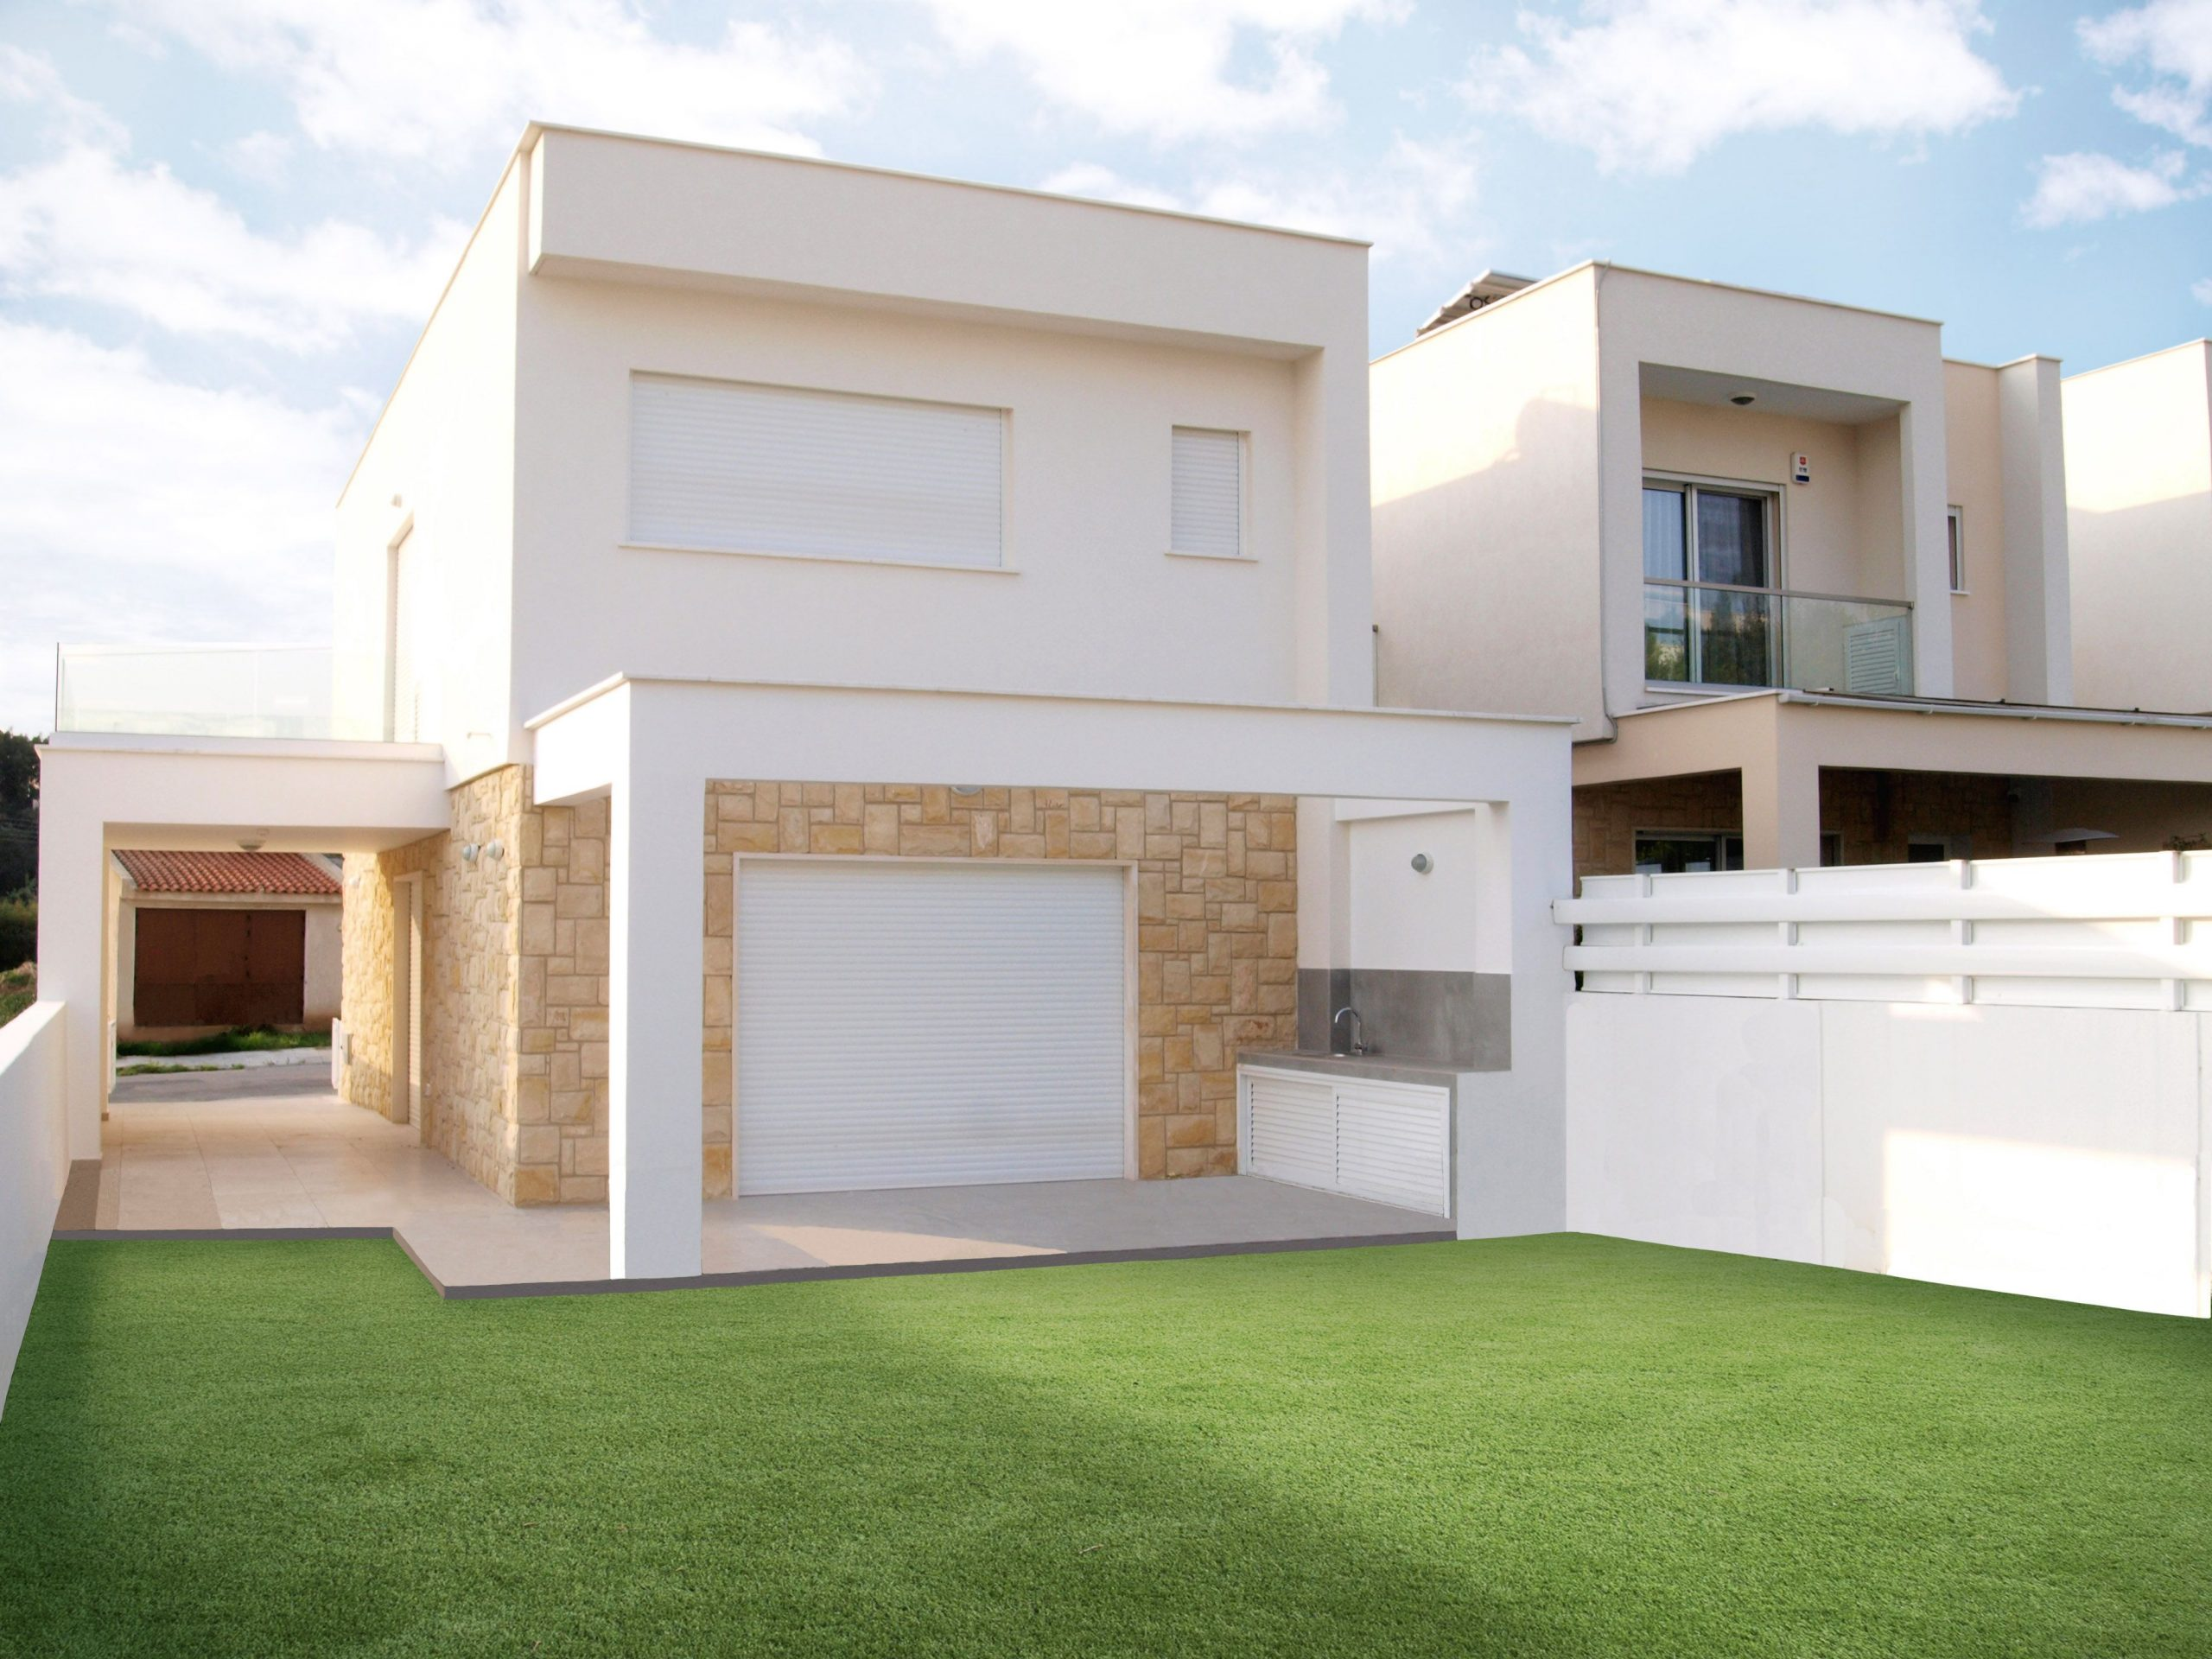 3 Bedroom House in Moutagiaka